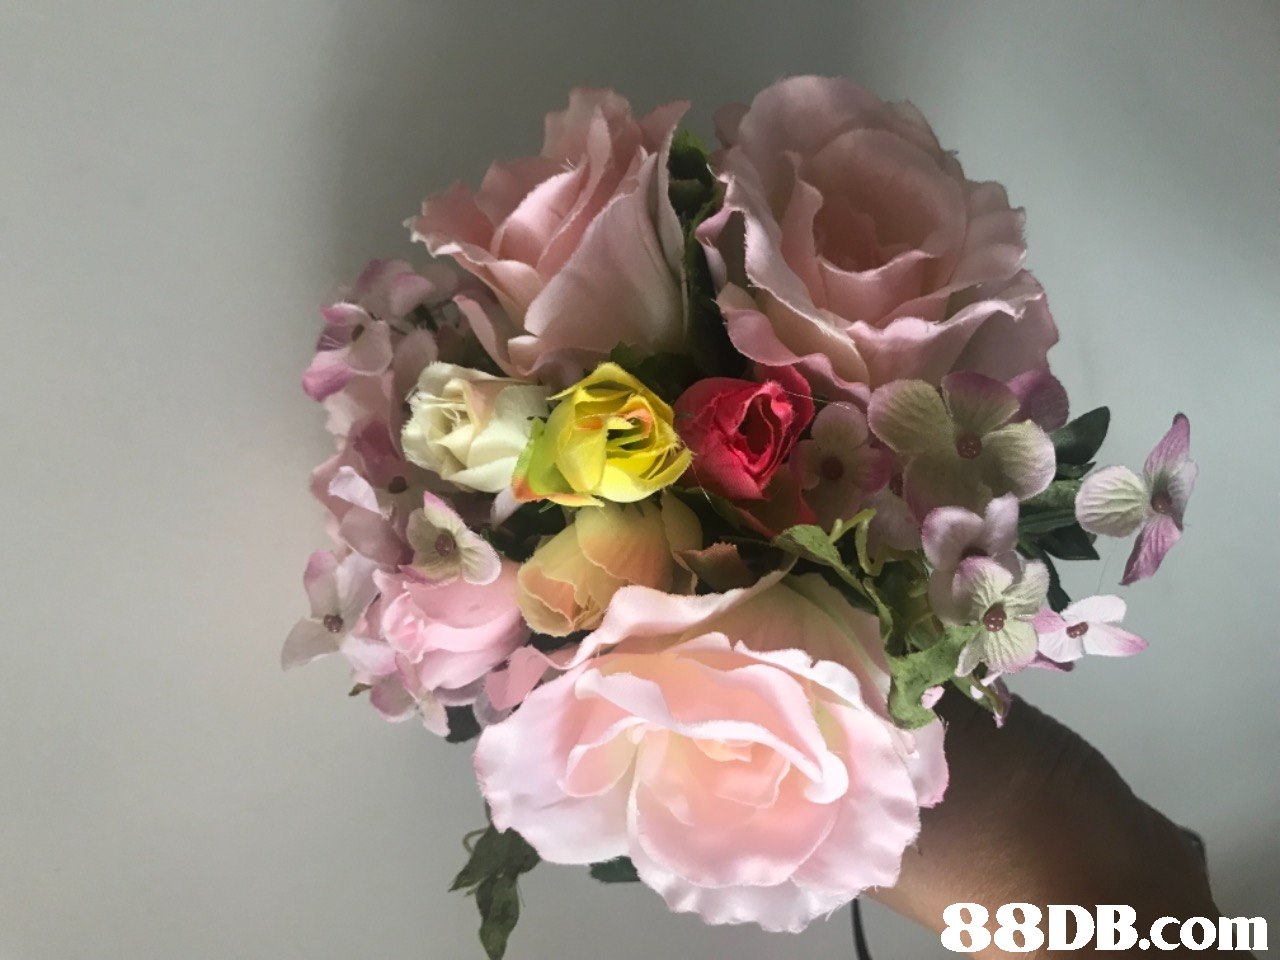 flower,pink,flower arranging,flower bouquet,cut flowers